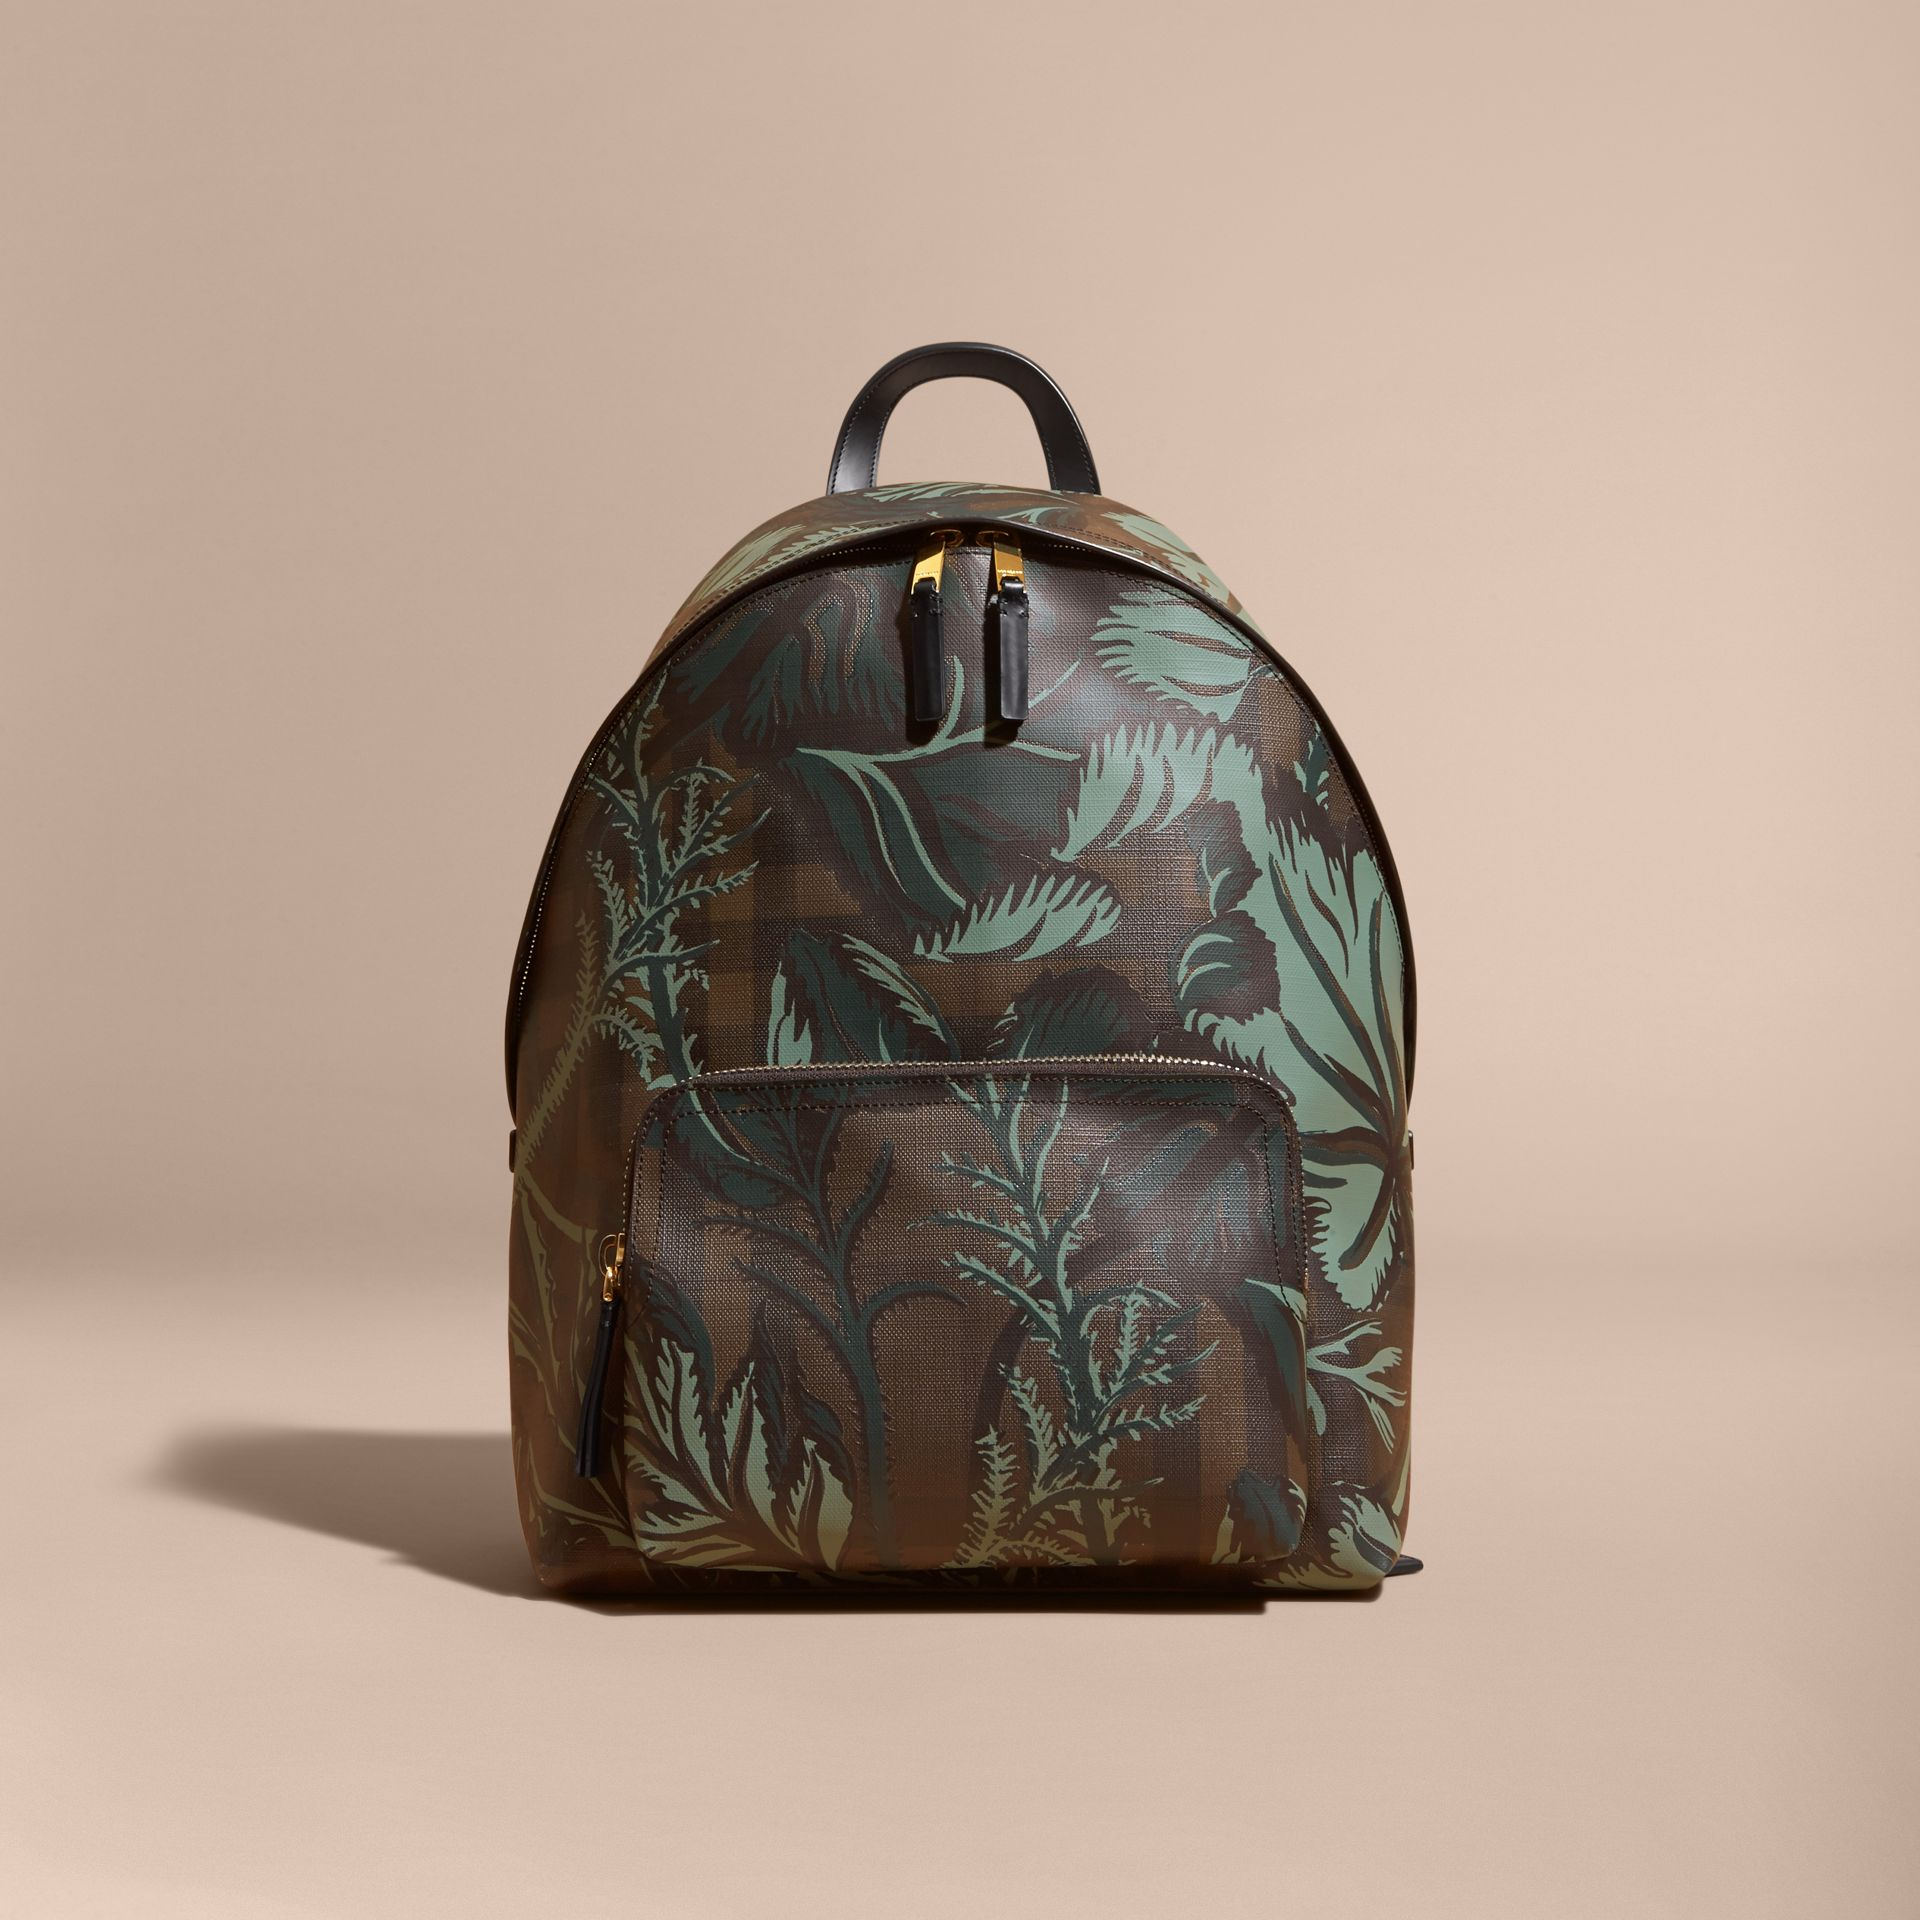 Chocolate floral Leather Trim Floral Print London Check Backpack Chocolate - gallery image 8